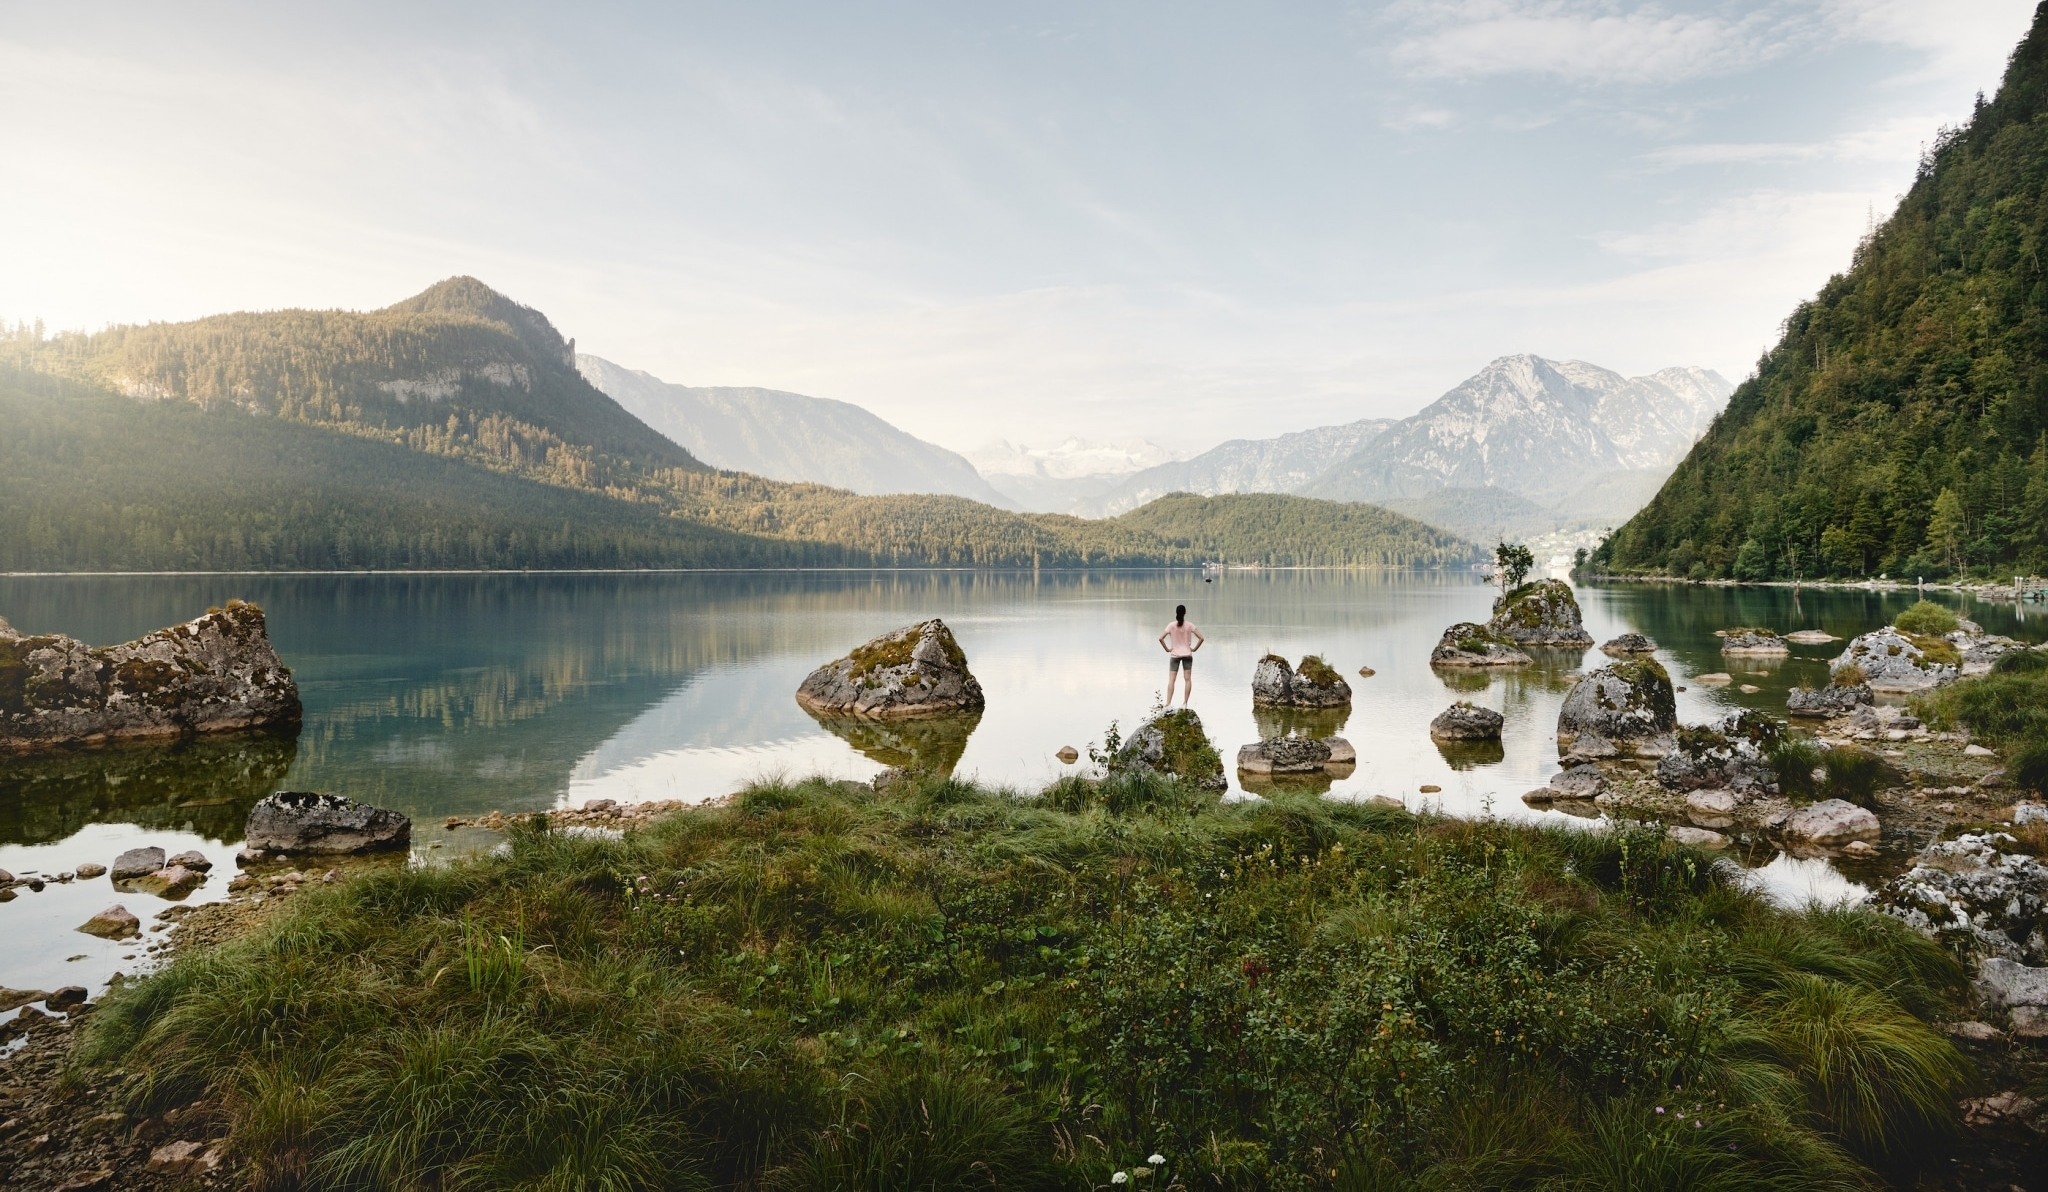 Woman enjoying the stunning view at the Lake Altaussee and the Styrian mountains